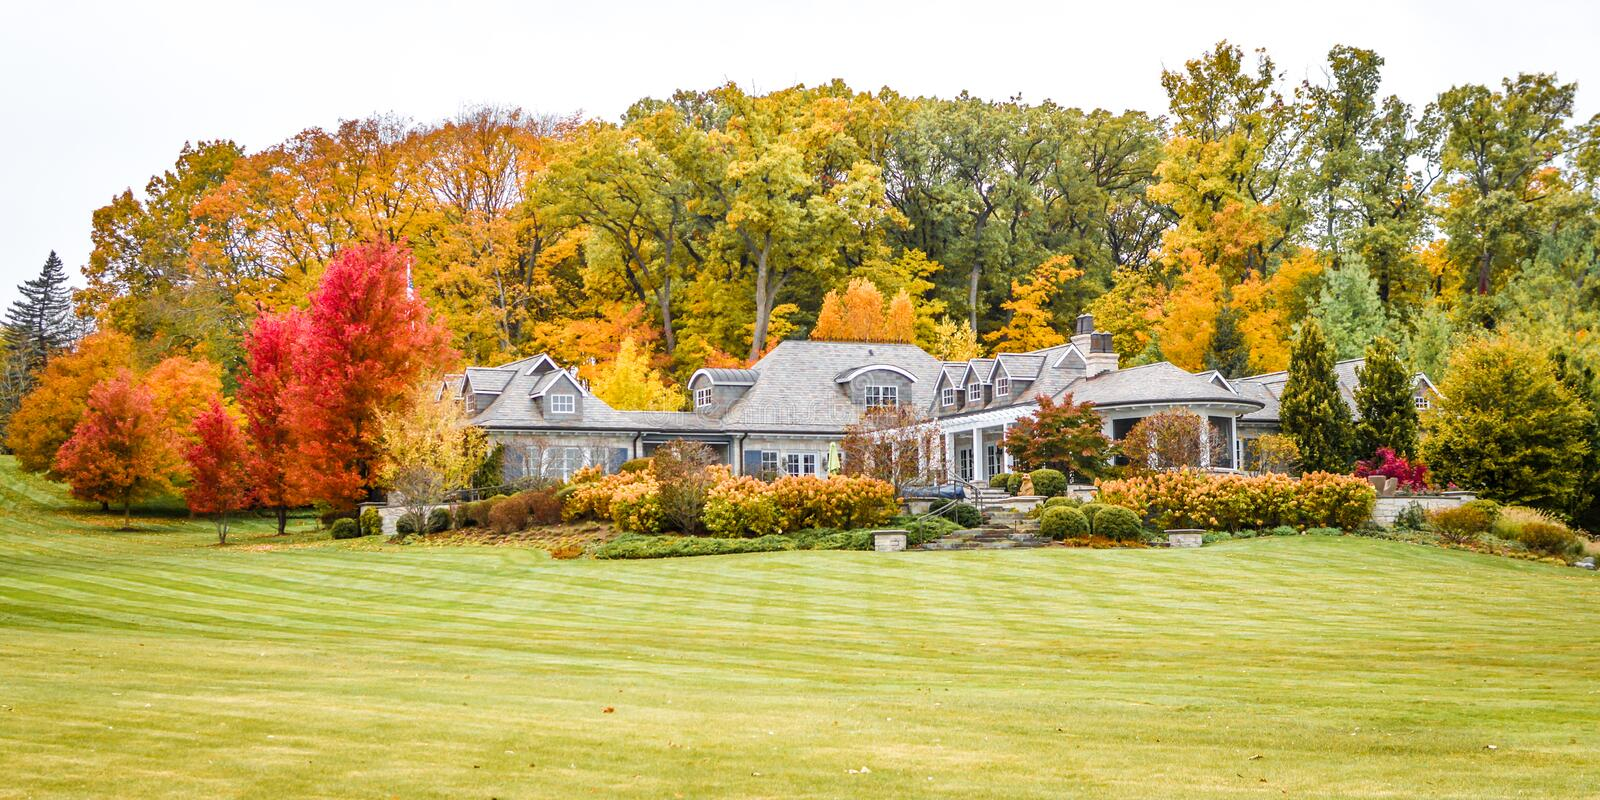 Large House in Fall, Lake Geneva, WI. A beautiful large, ranch style home in the autumn with colored trees located along the shoreline of Lake Geneva, Wisconsin royalty free stock photography